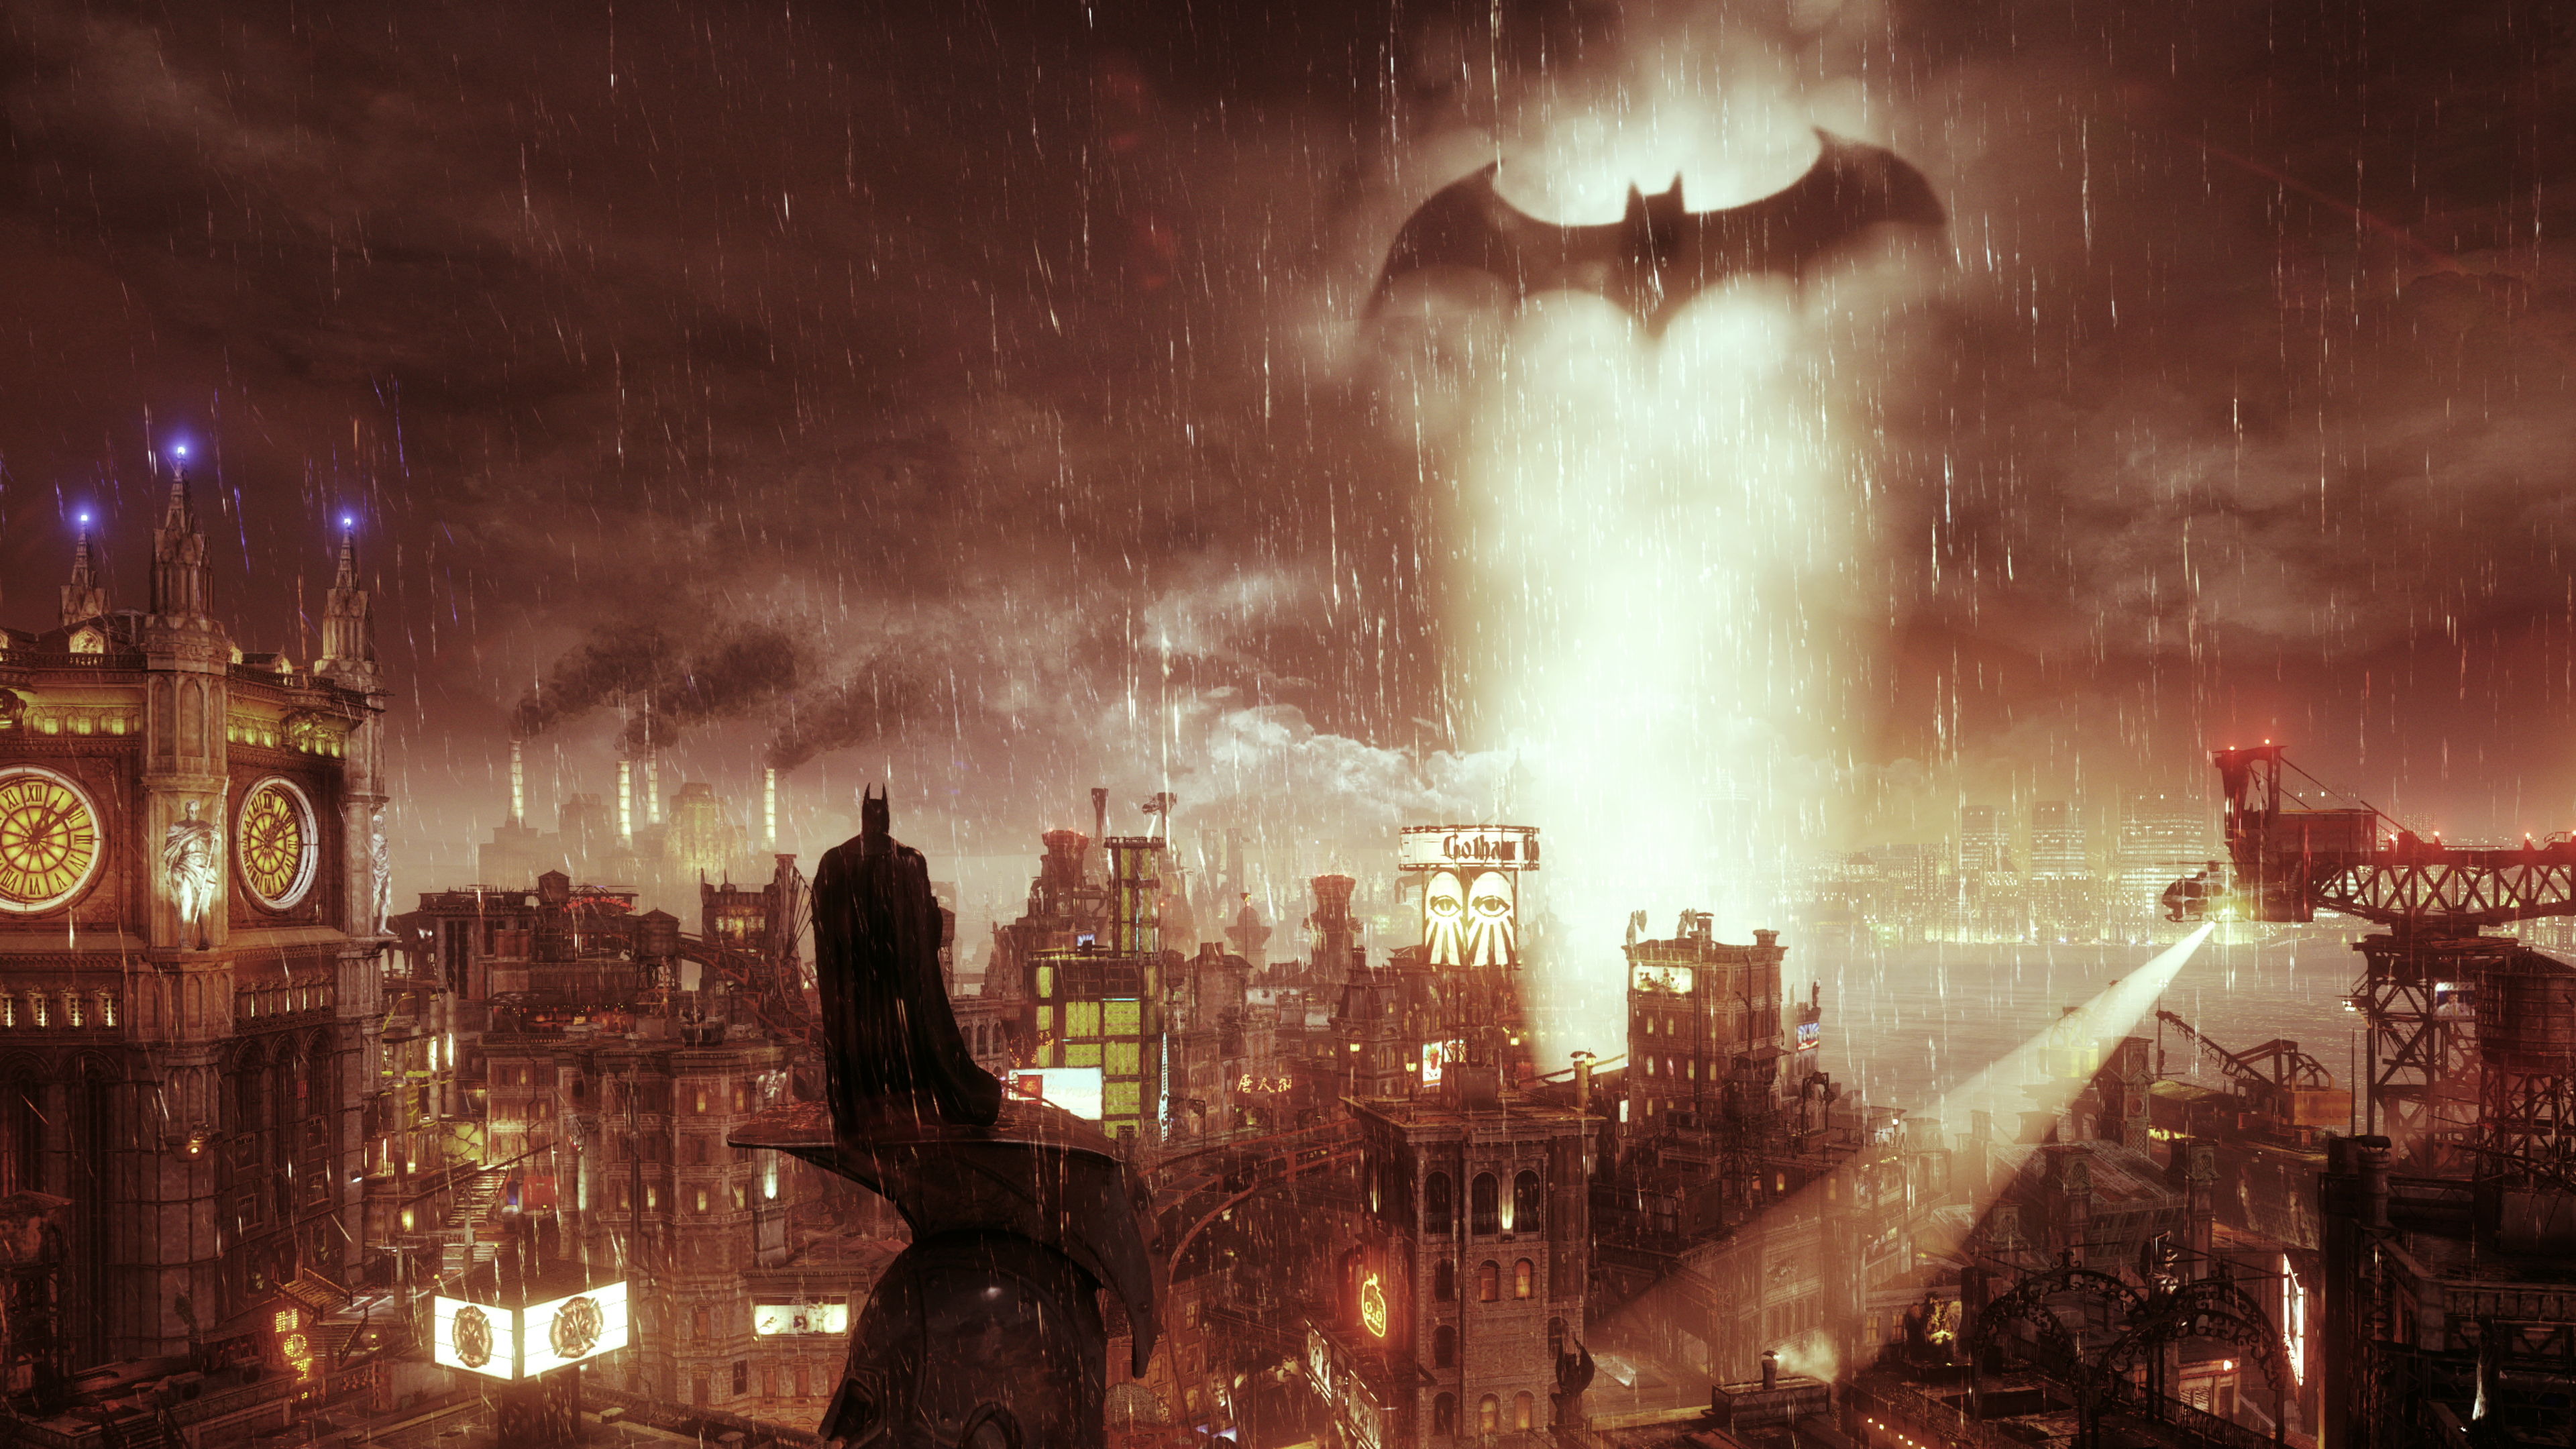 batman arkham knight game 1568056385 - Batman Arkham Knight Game - hd-wallpapers, games wallpapers, batman wallpapers, batman arkham knight wallpapers, 4k-wallpapers